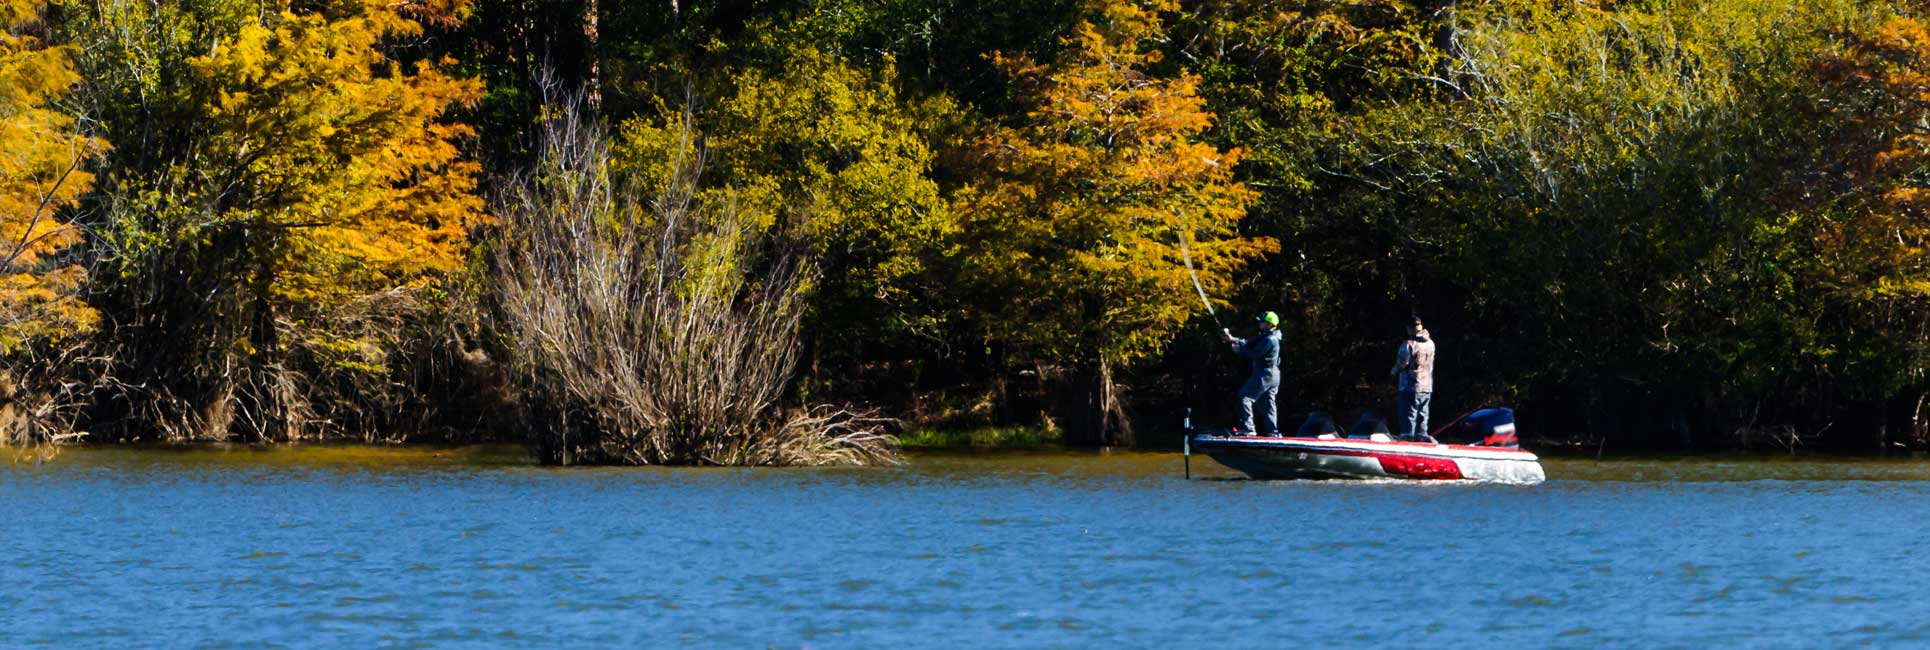 Two men fishing from a red and white bass boat on Lake Somerville, Texas